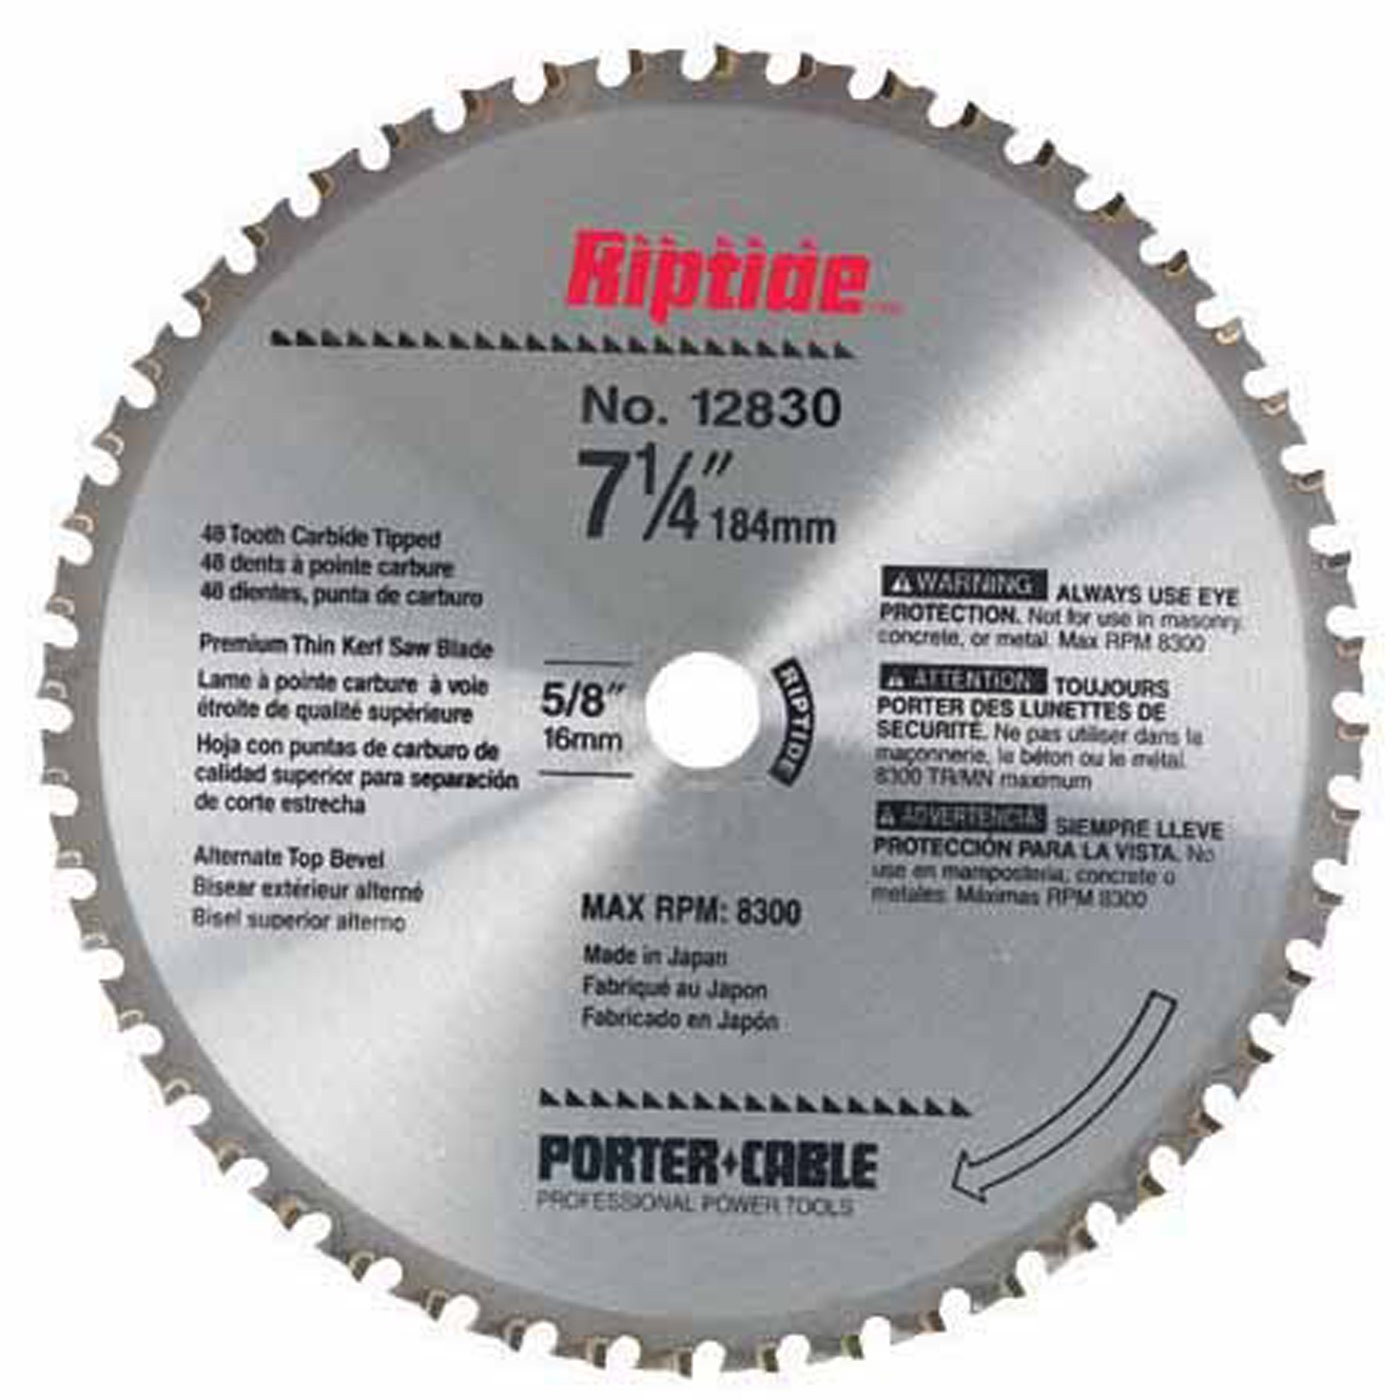 Tool accessories circular saw blades porter cable 12830 7 14 x 48t metal cutting circular saw blade right greentooth Image collections